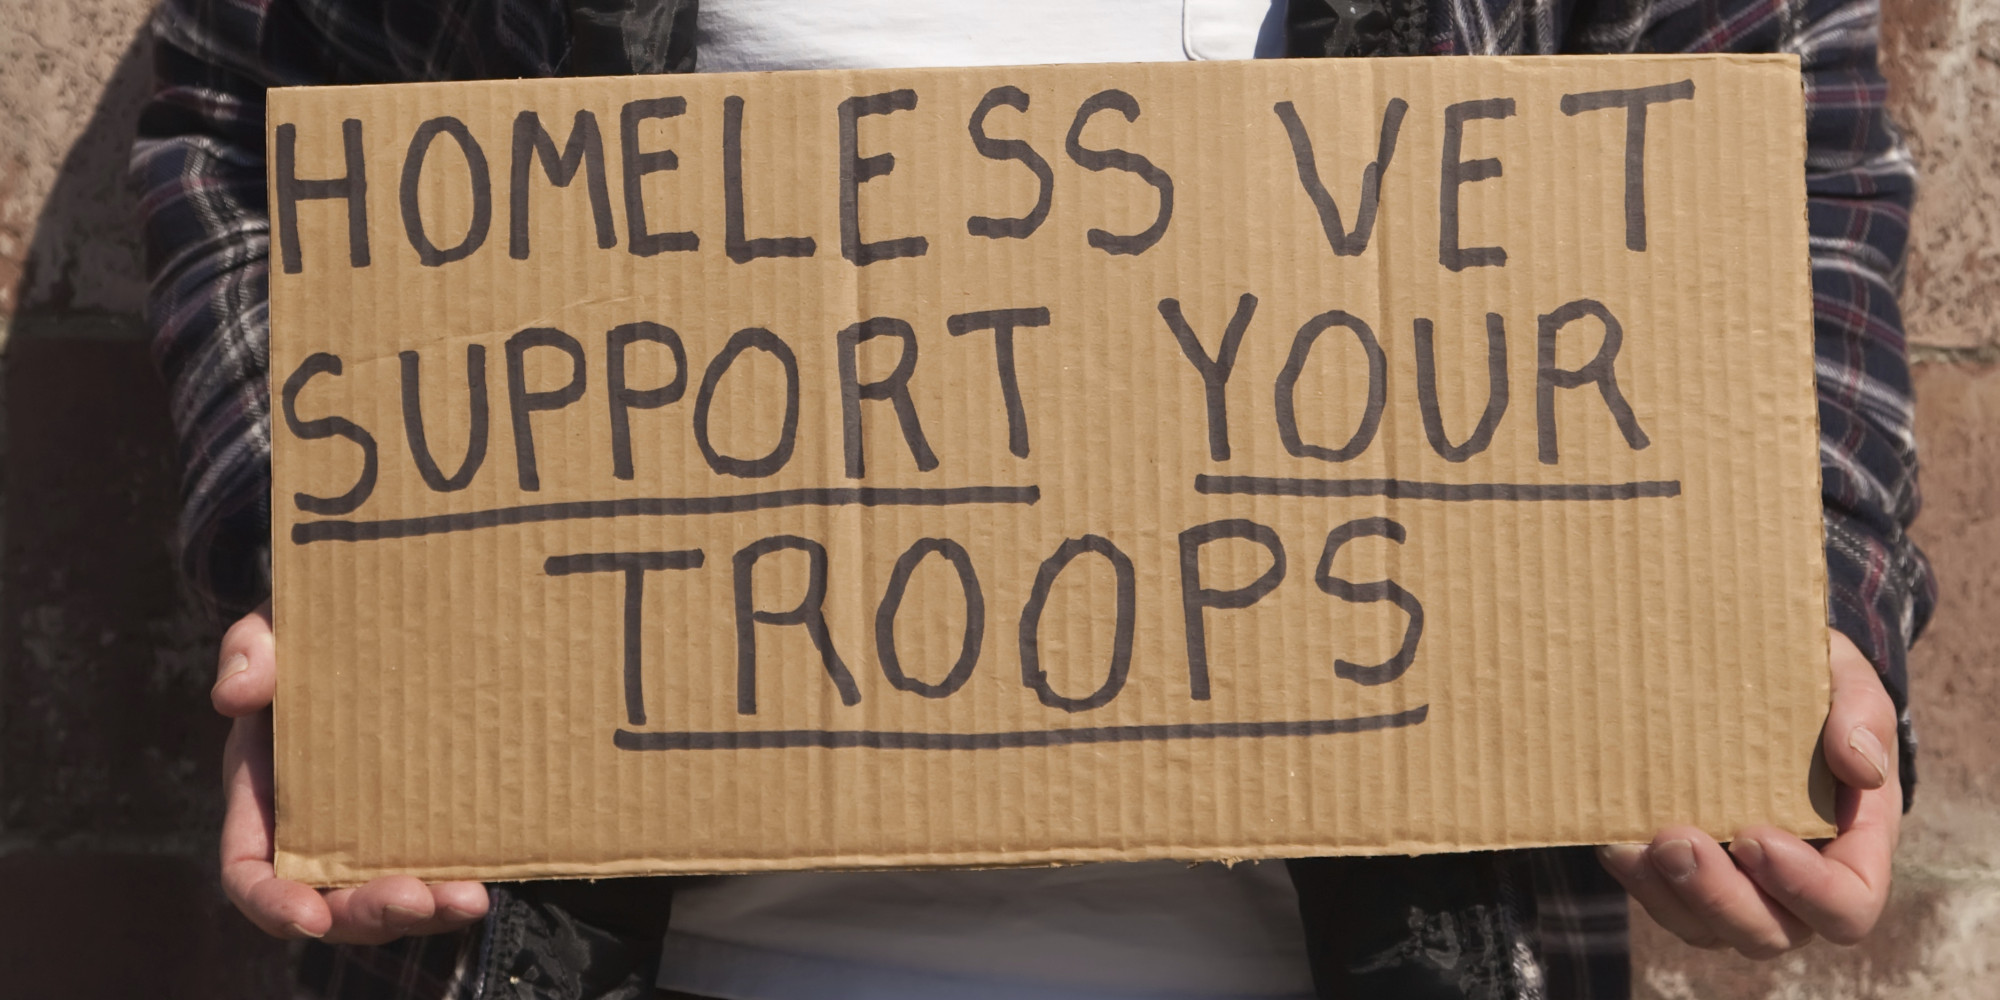 o-HOMELESS-VETERANS-HOUSING-FIRST-facebook